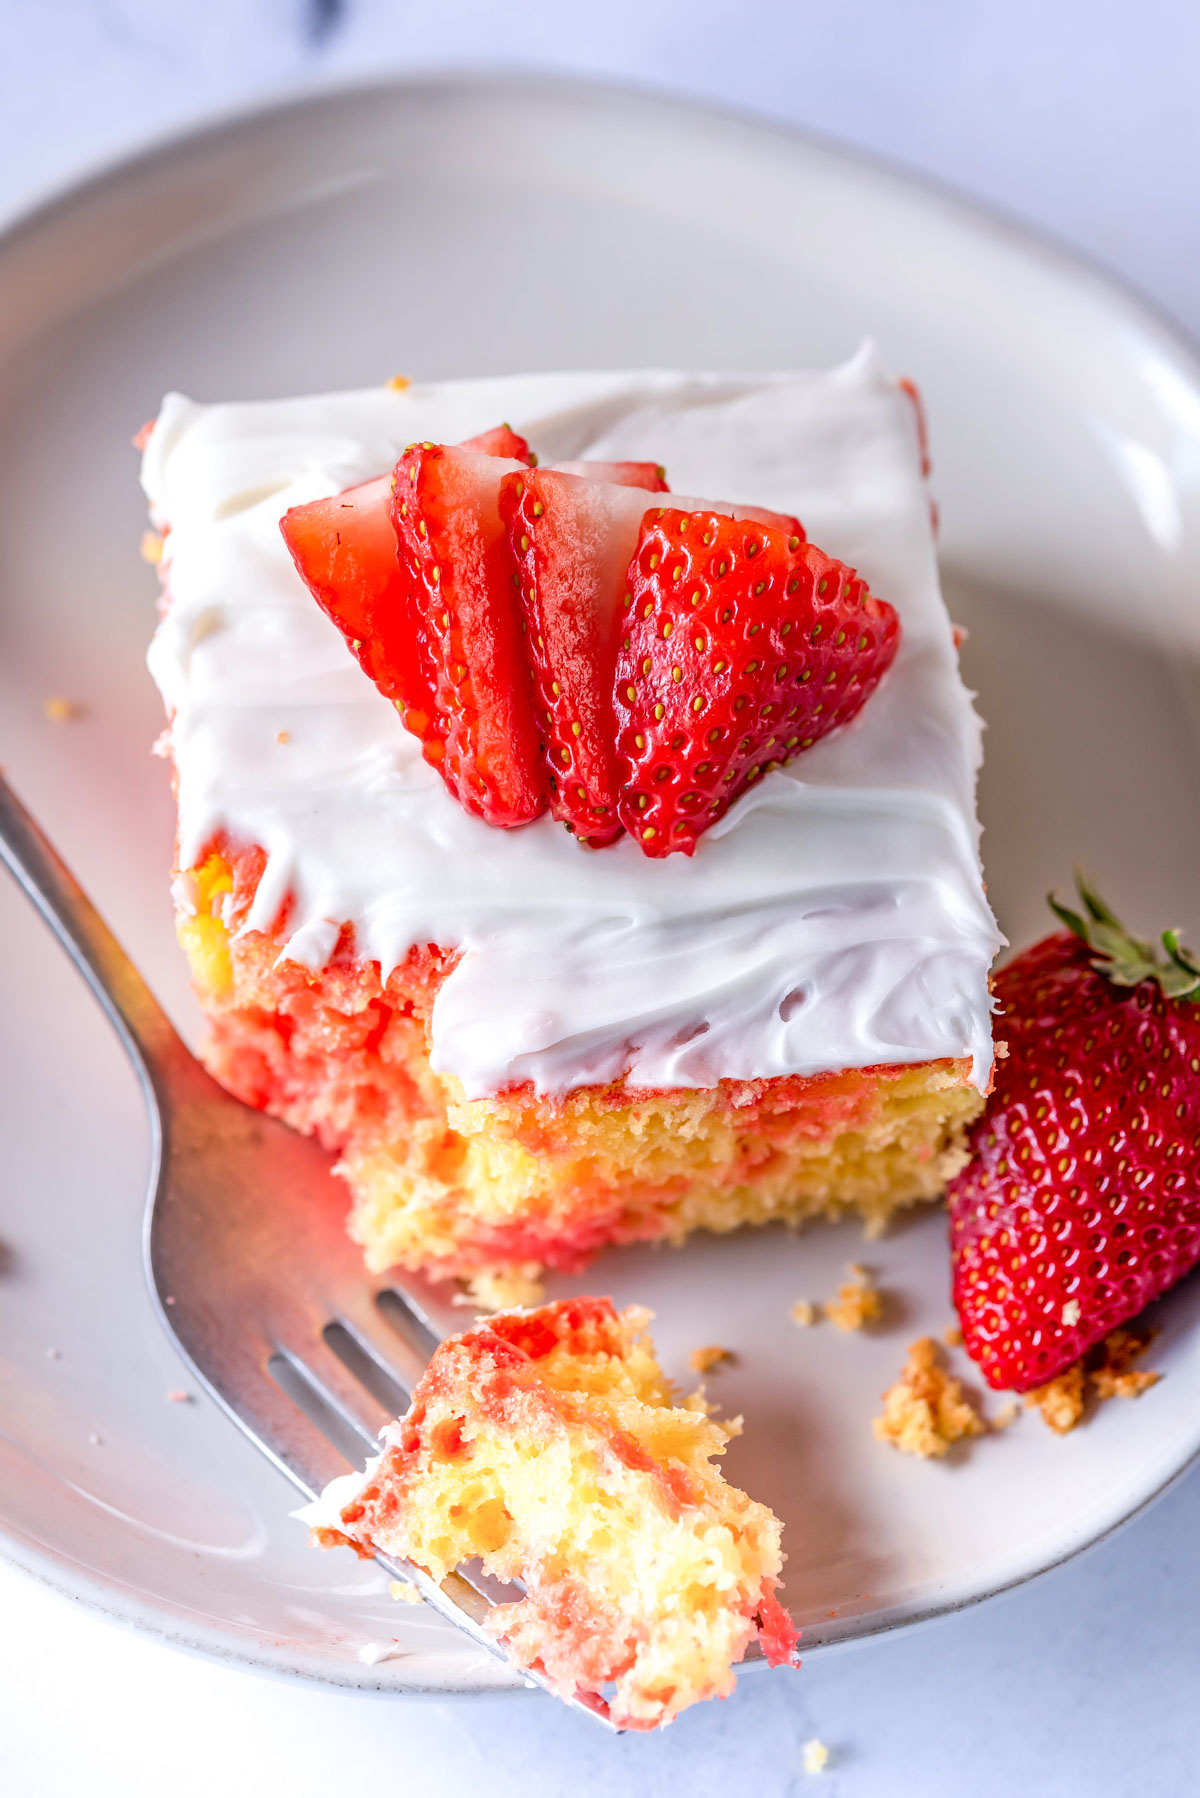 a berry poke cake with strawberry slices on the top